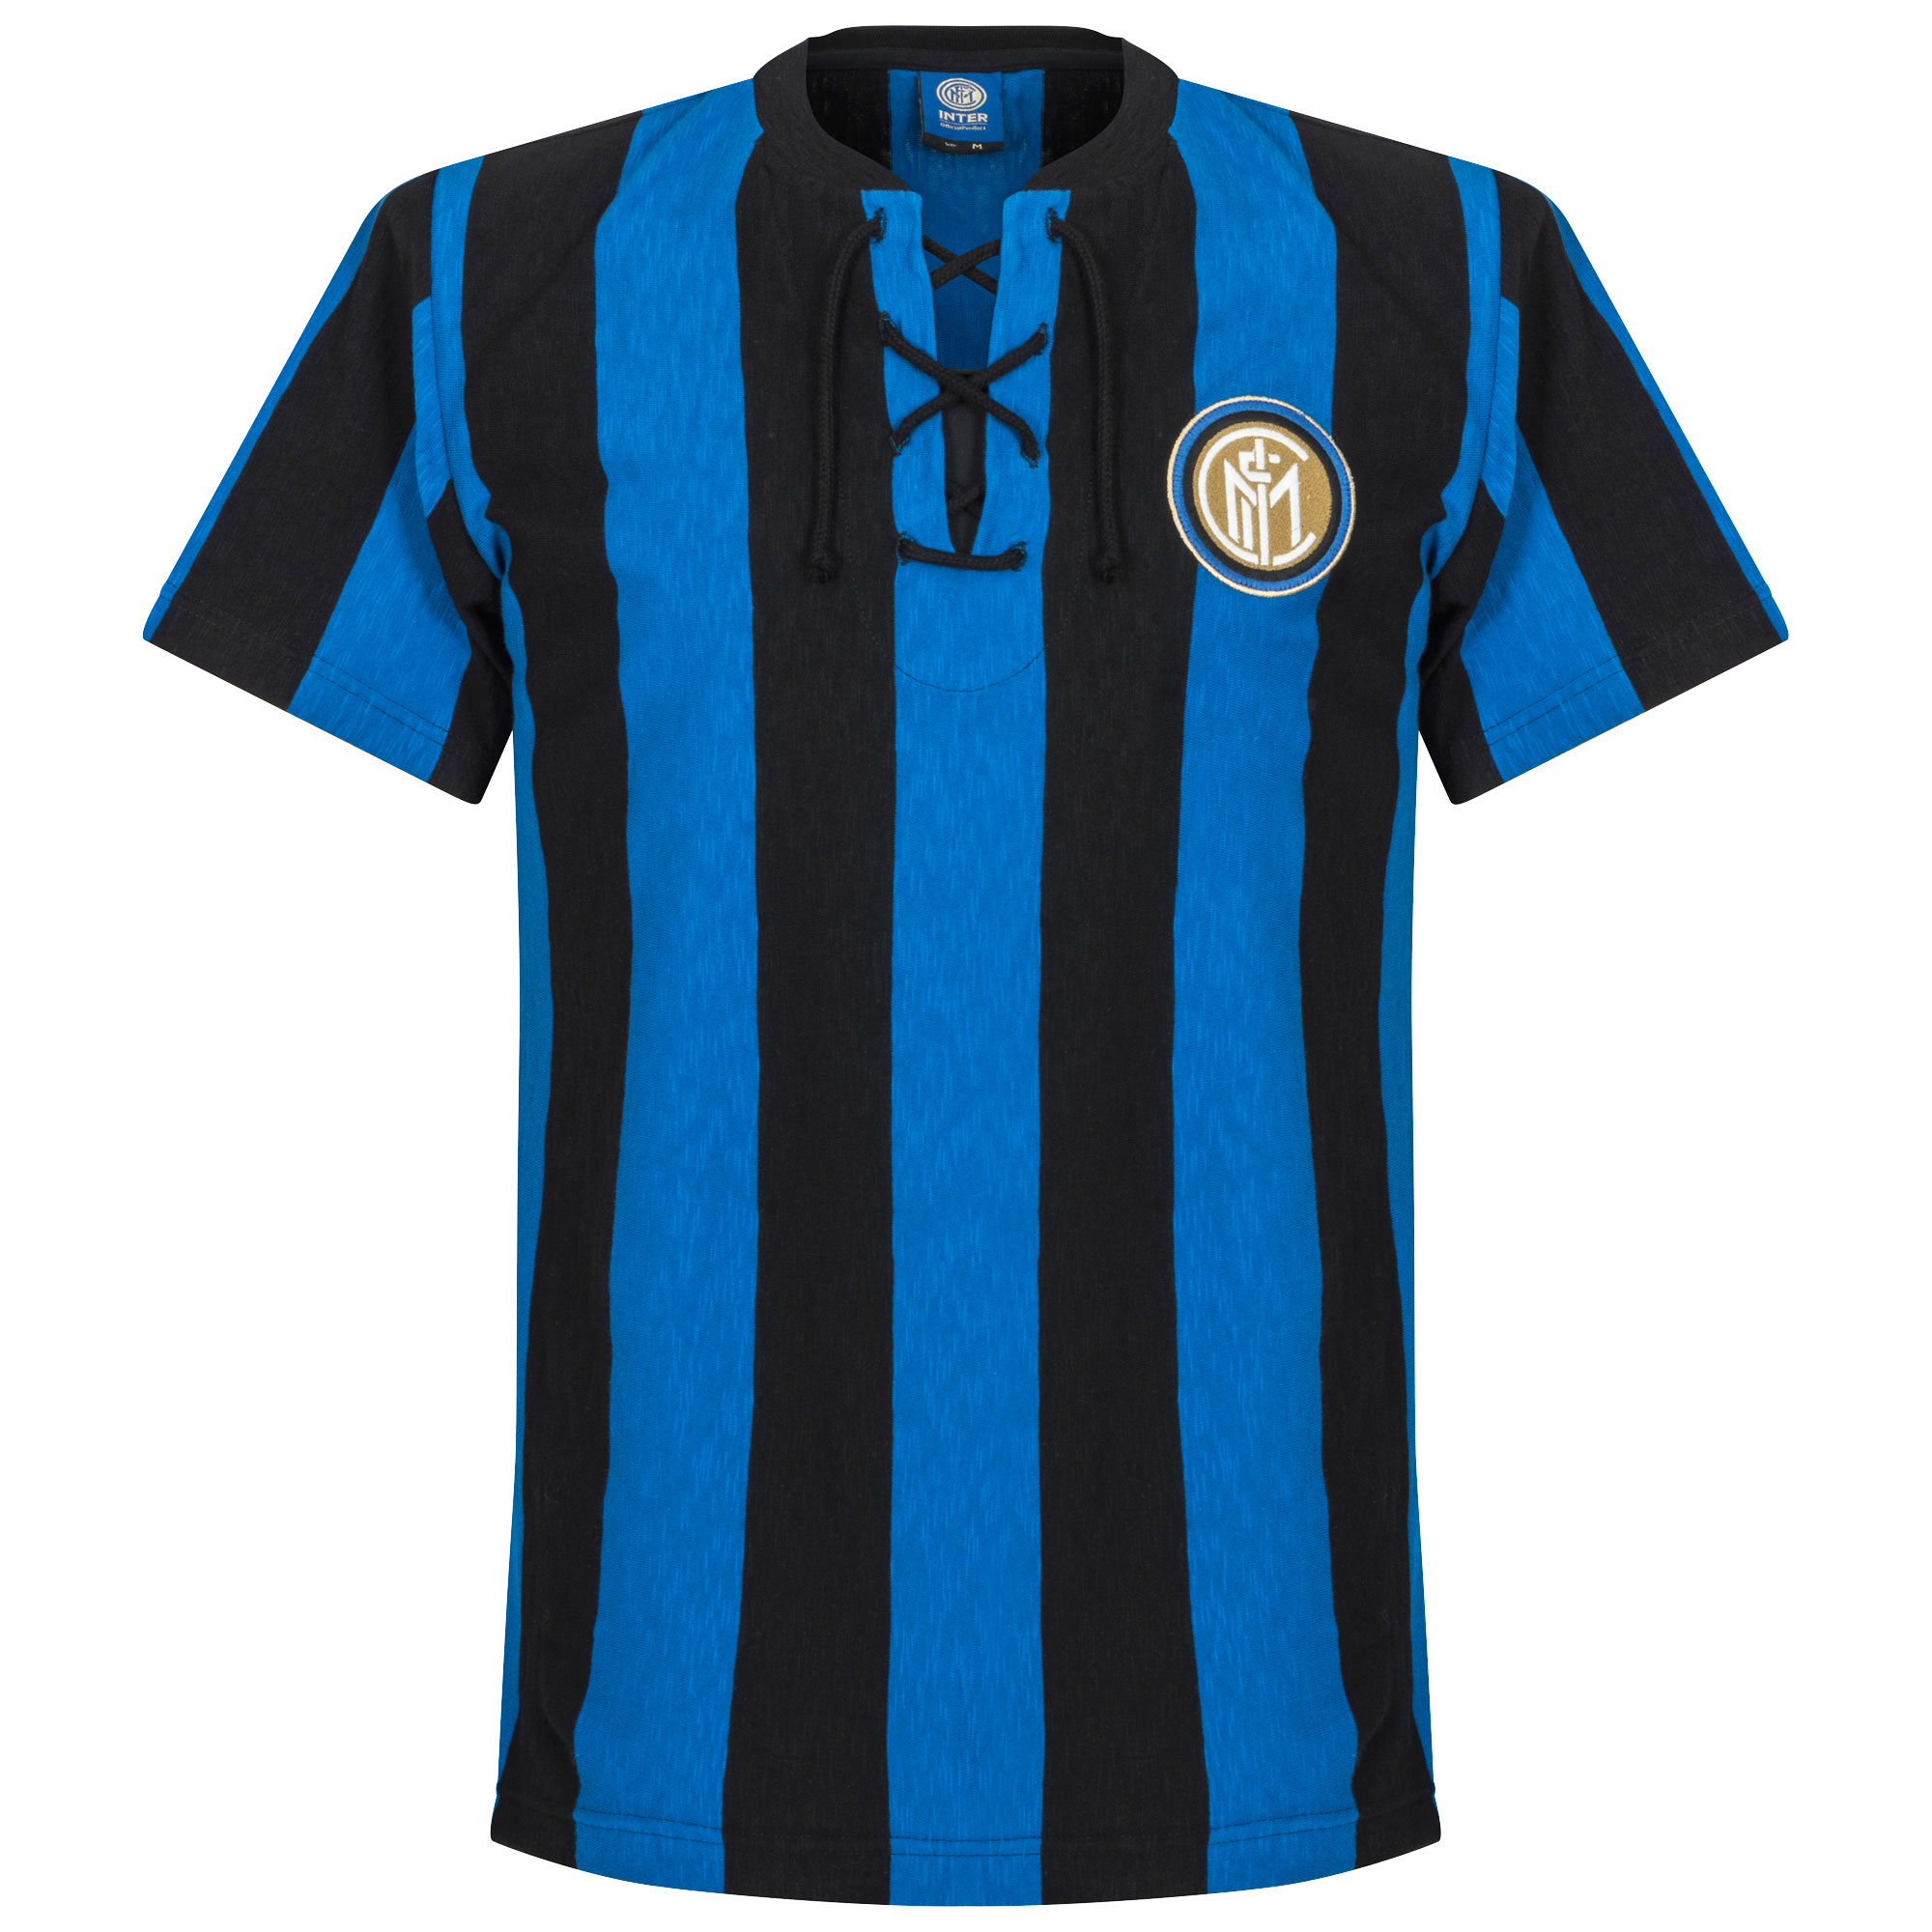 58-59 Inter Milan Home Retro Shirt - XL